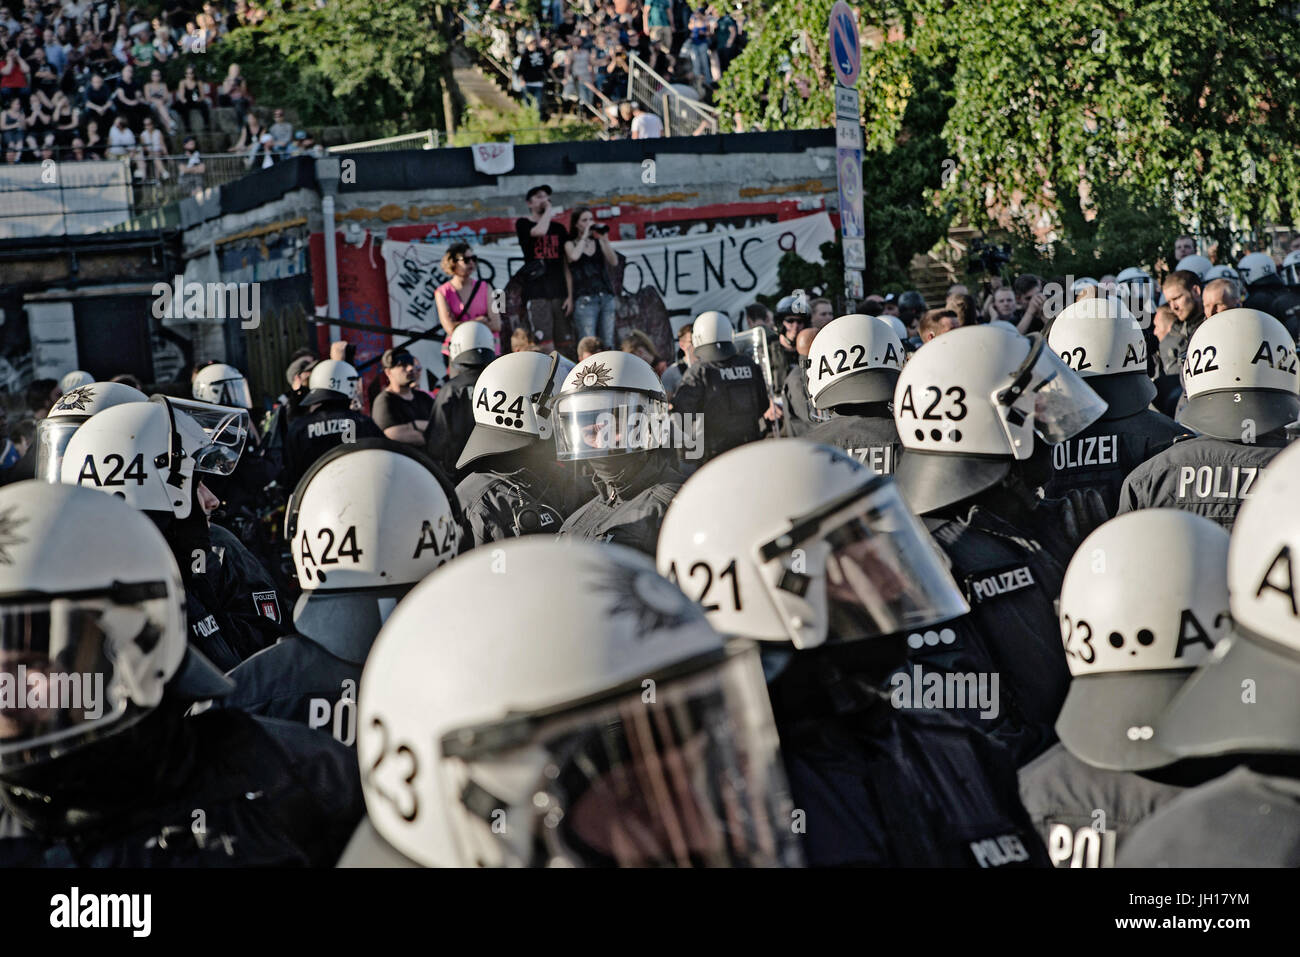 Police during the G20 summit - Stock Image